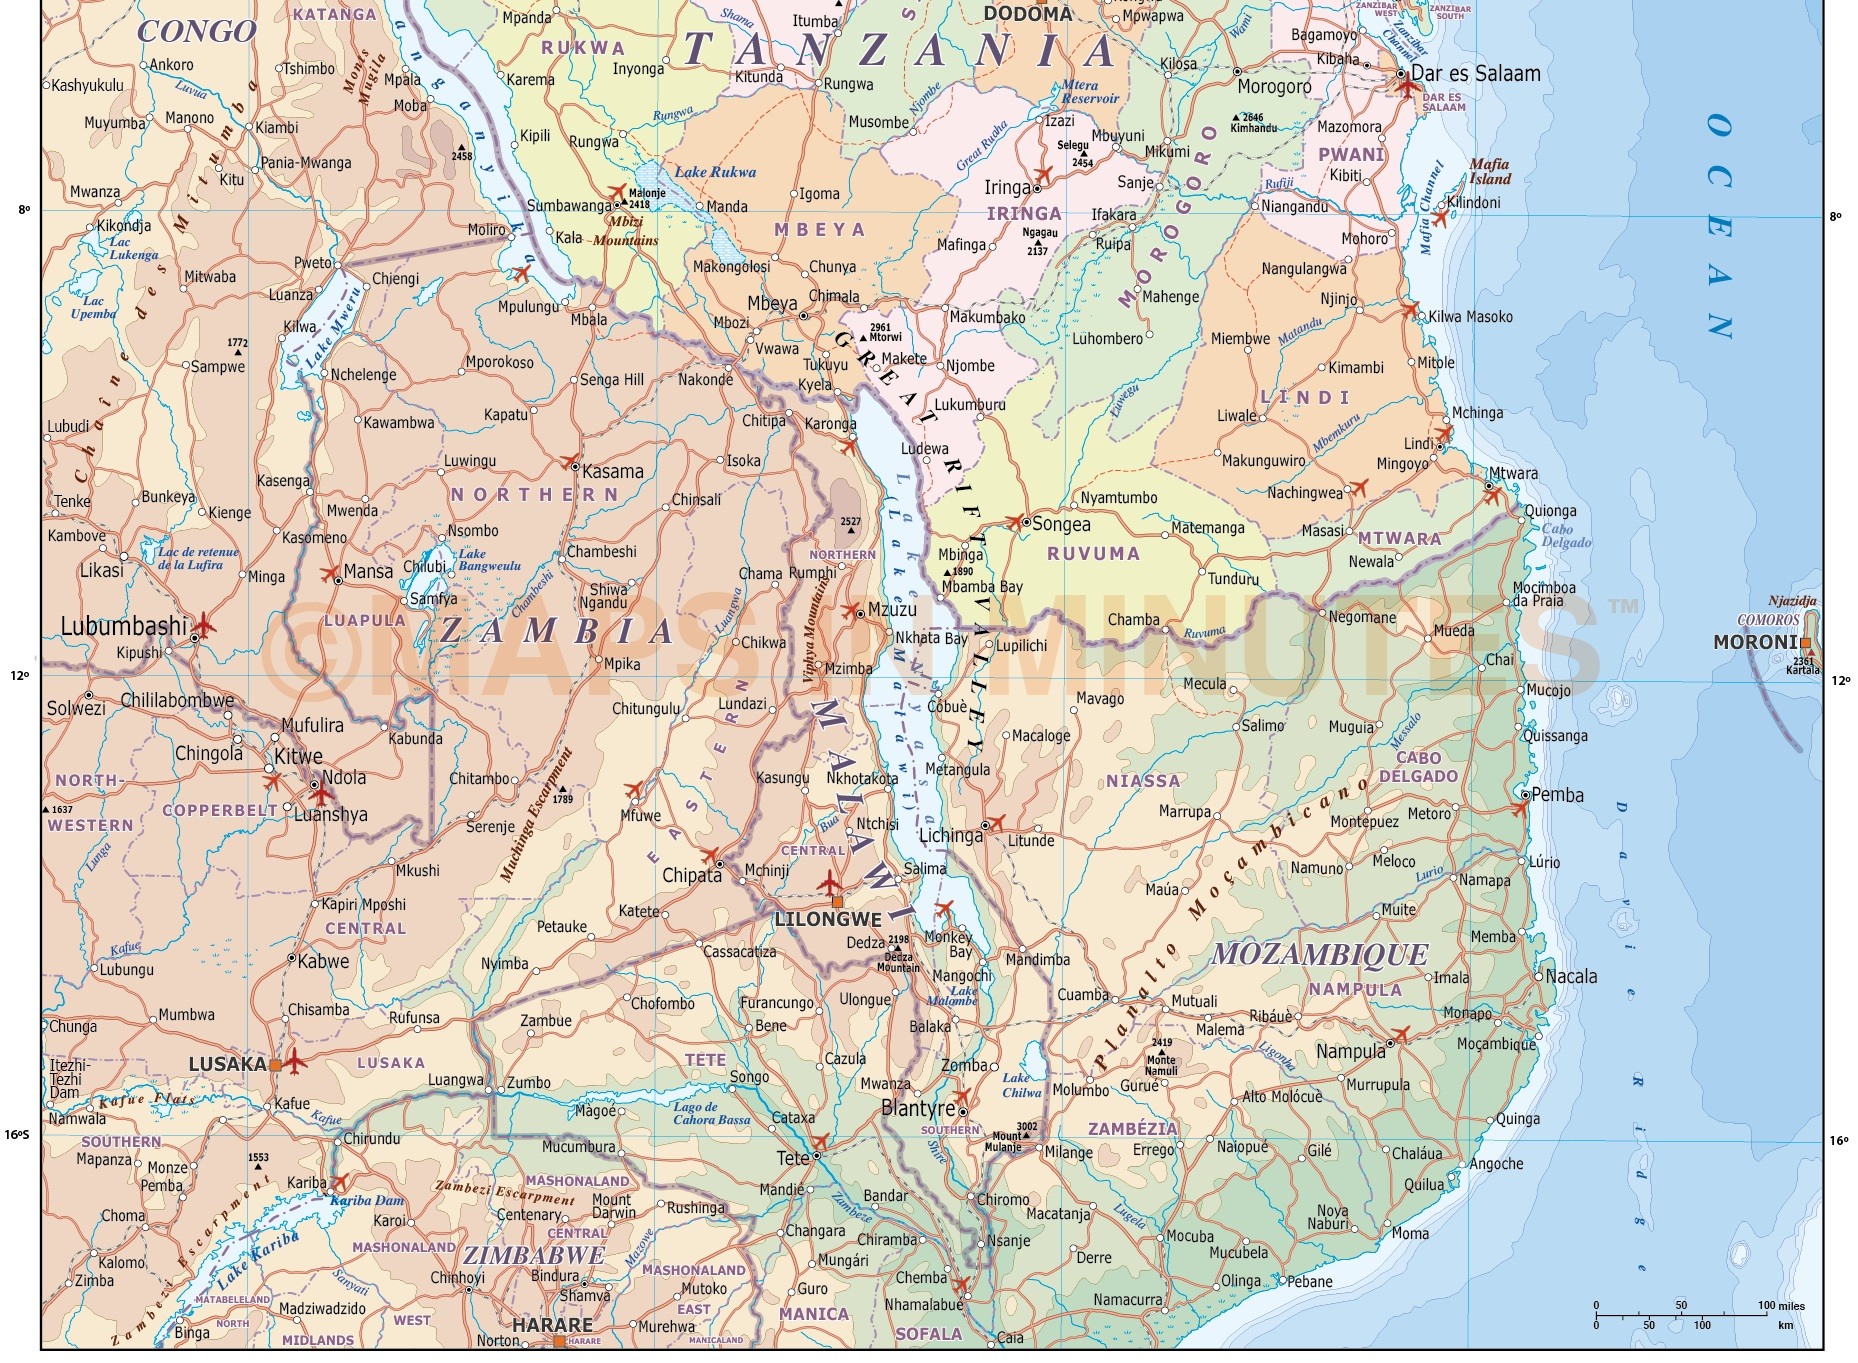 Tanzania digital vector political road rail map with land and